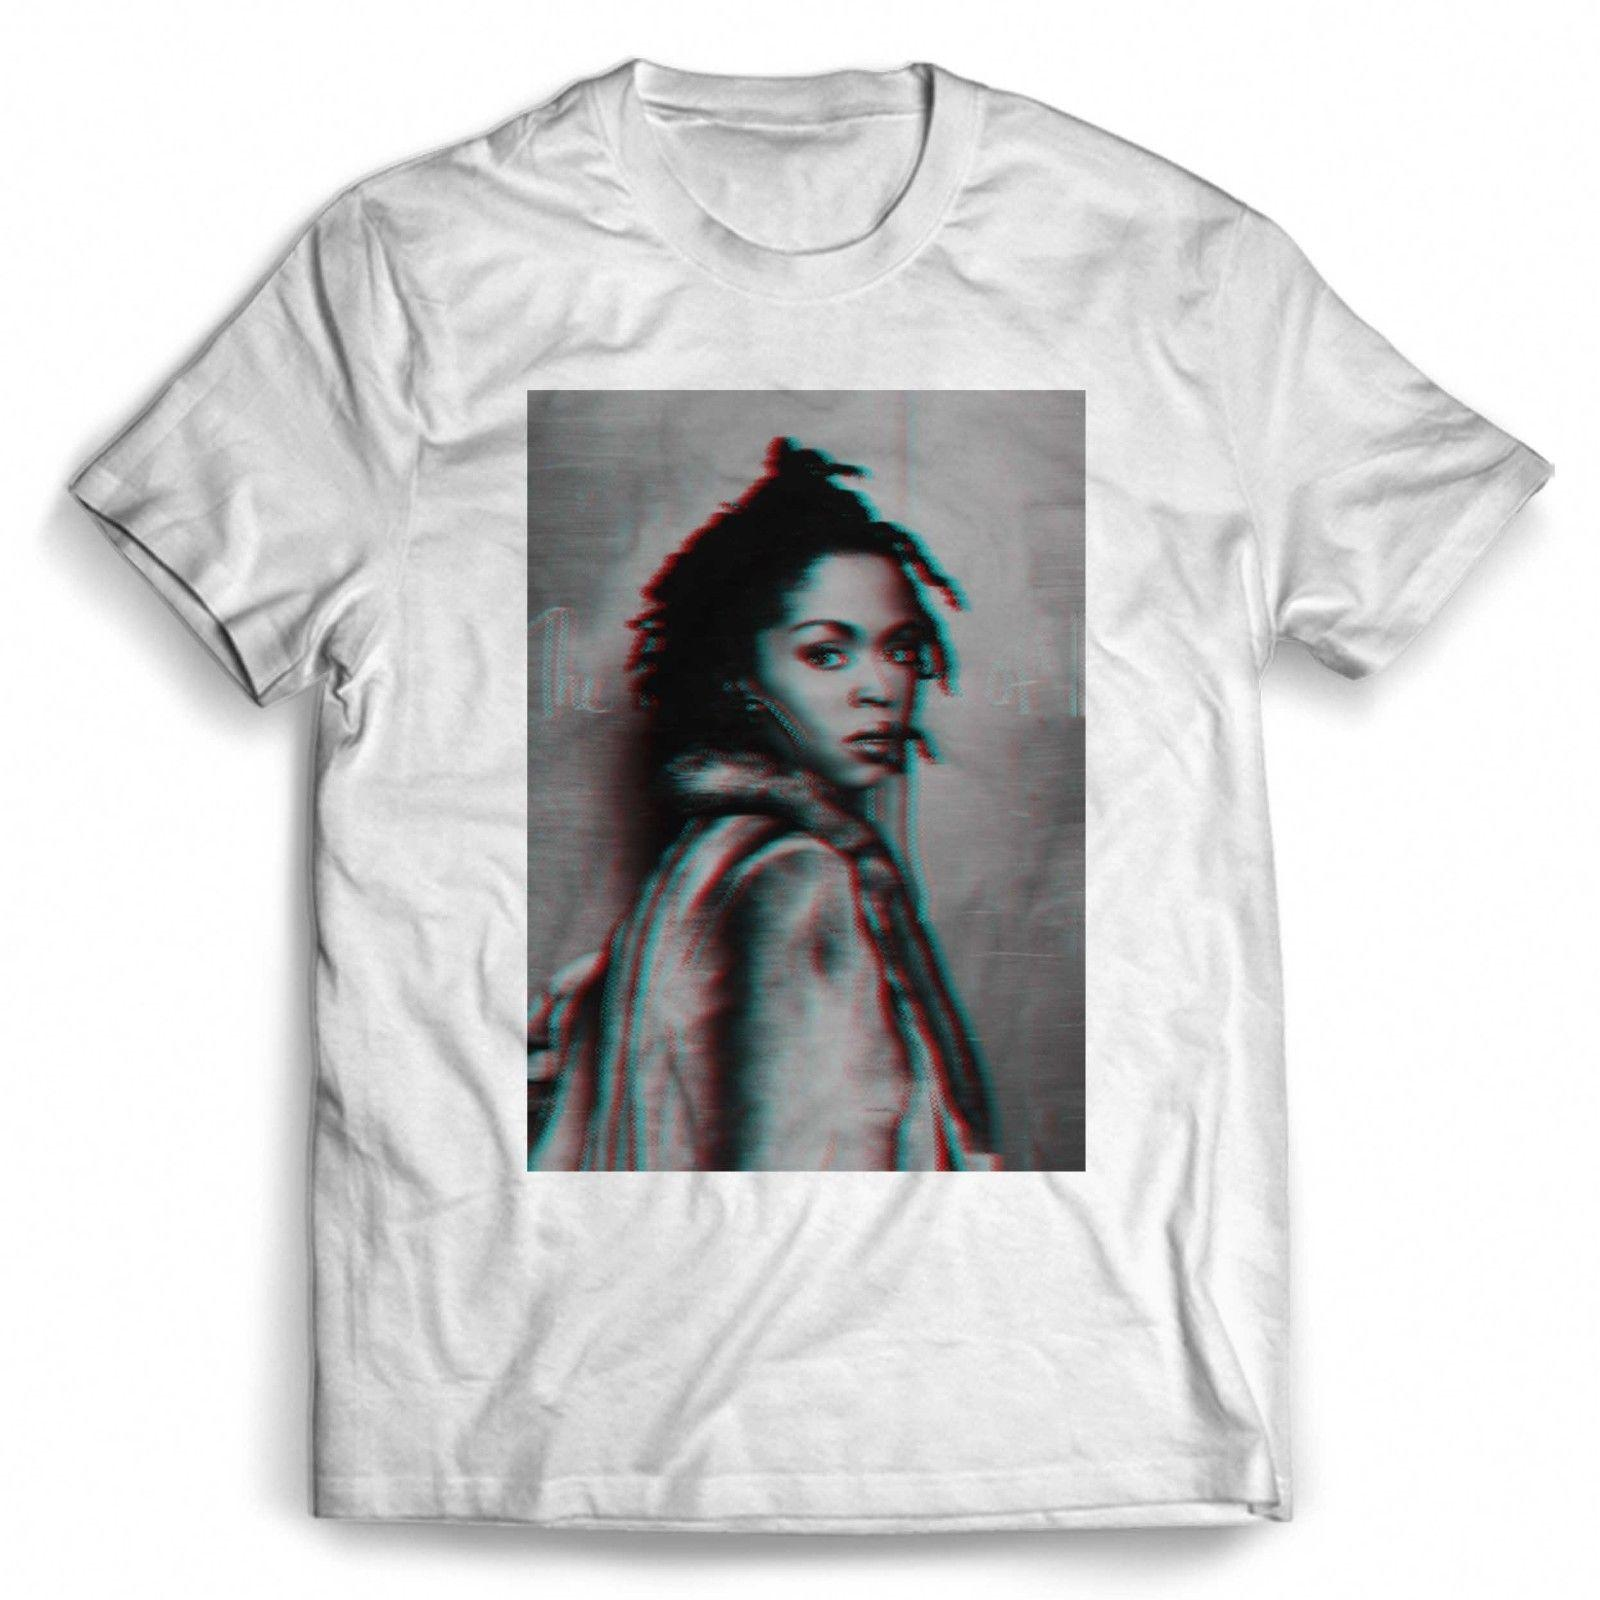 1071458d Lauryn Hill Glitch Effect Man / Woman T Shirt White Black Grey Red Trousers  Tshirt Random T Shirts Poker T Shirts From Onefulcup, $16.24| DHgate.Com